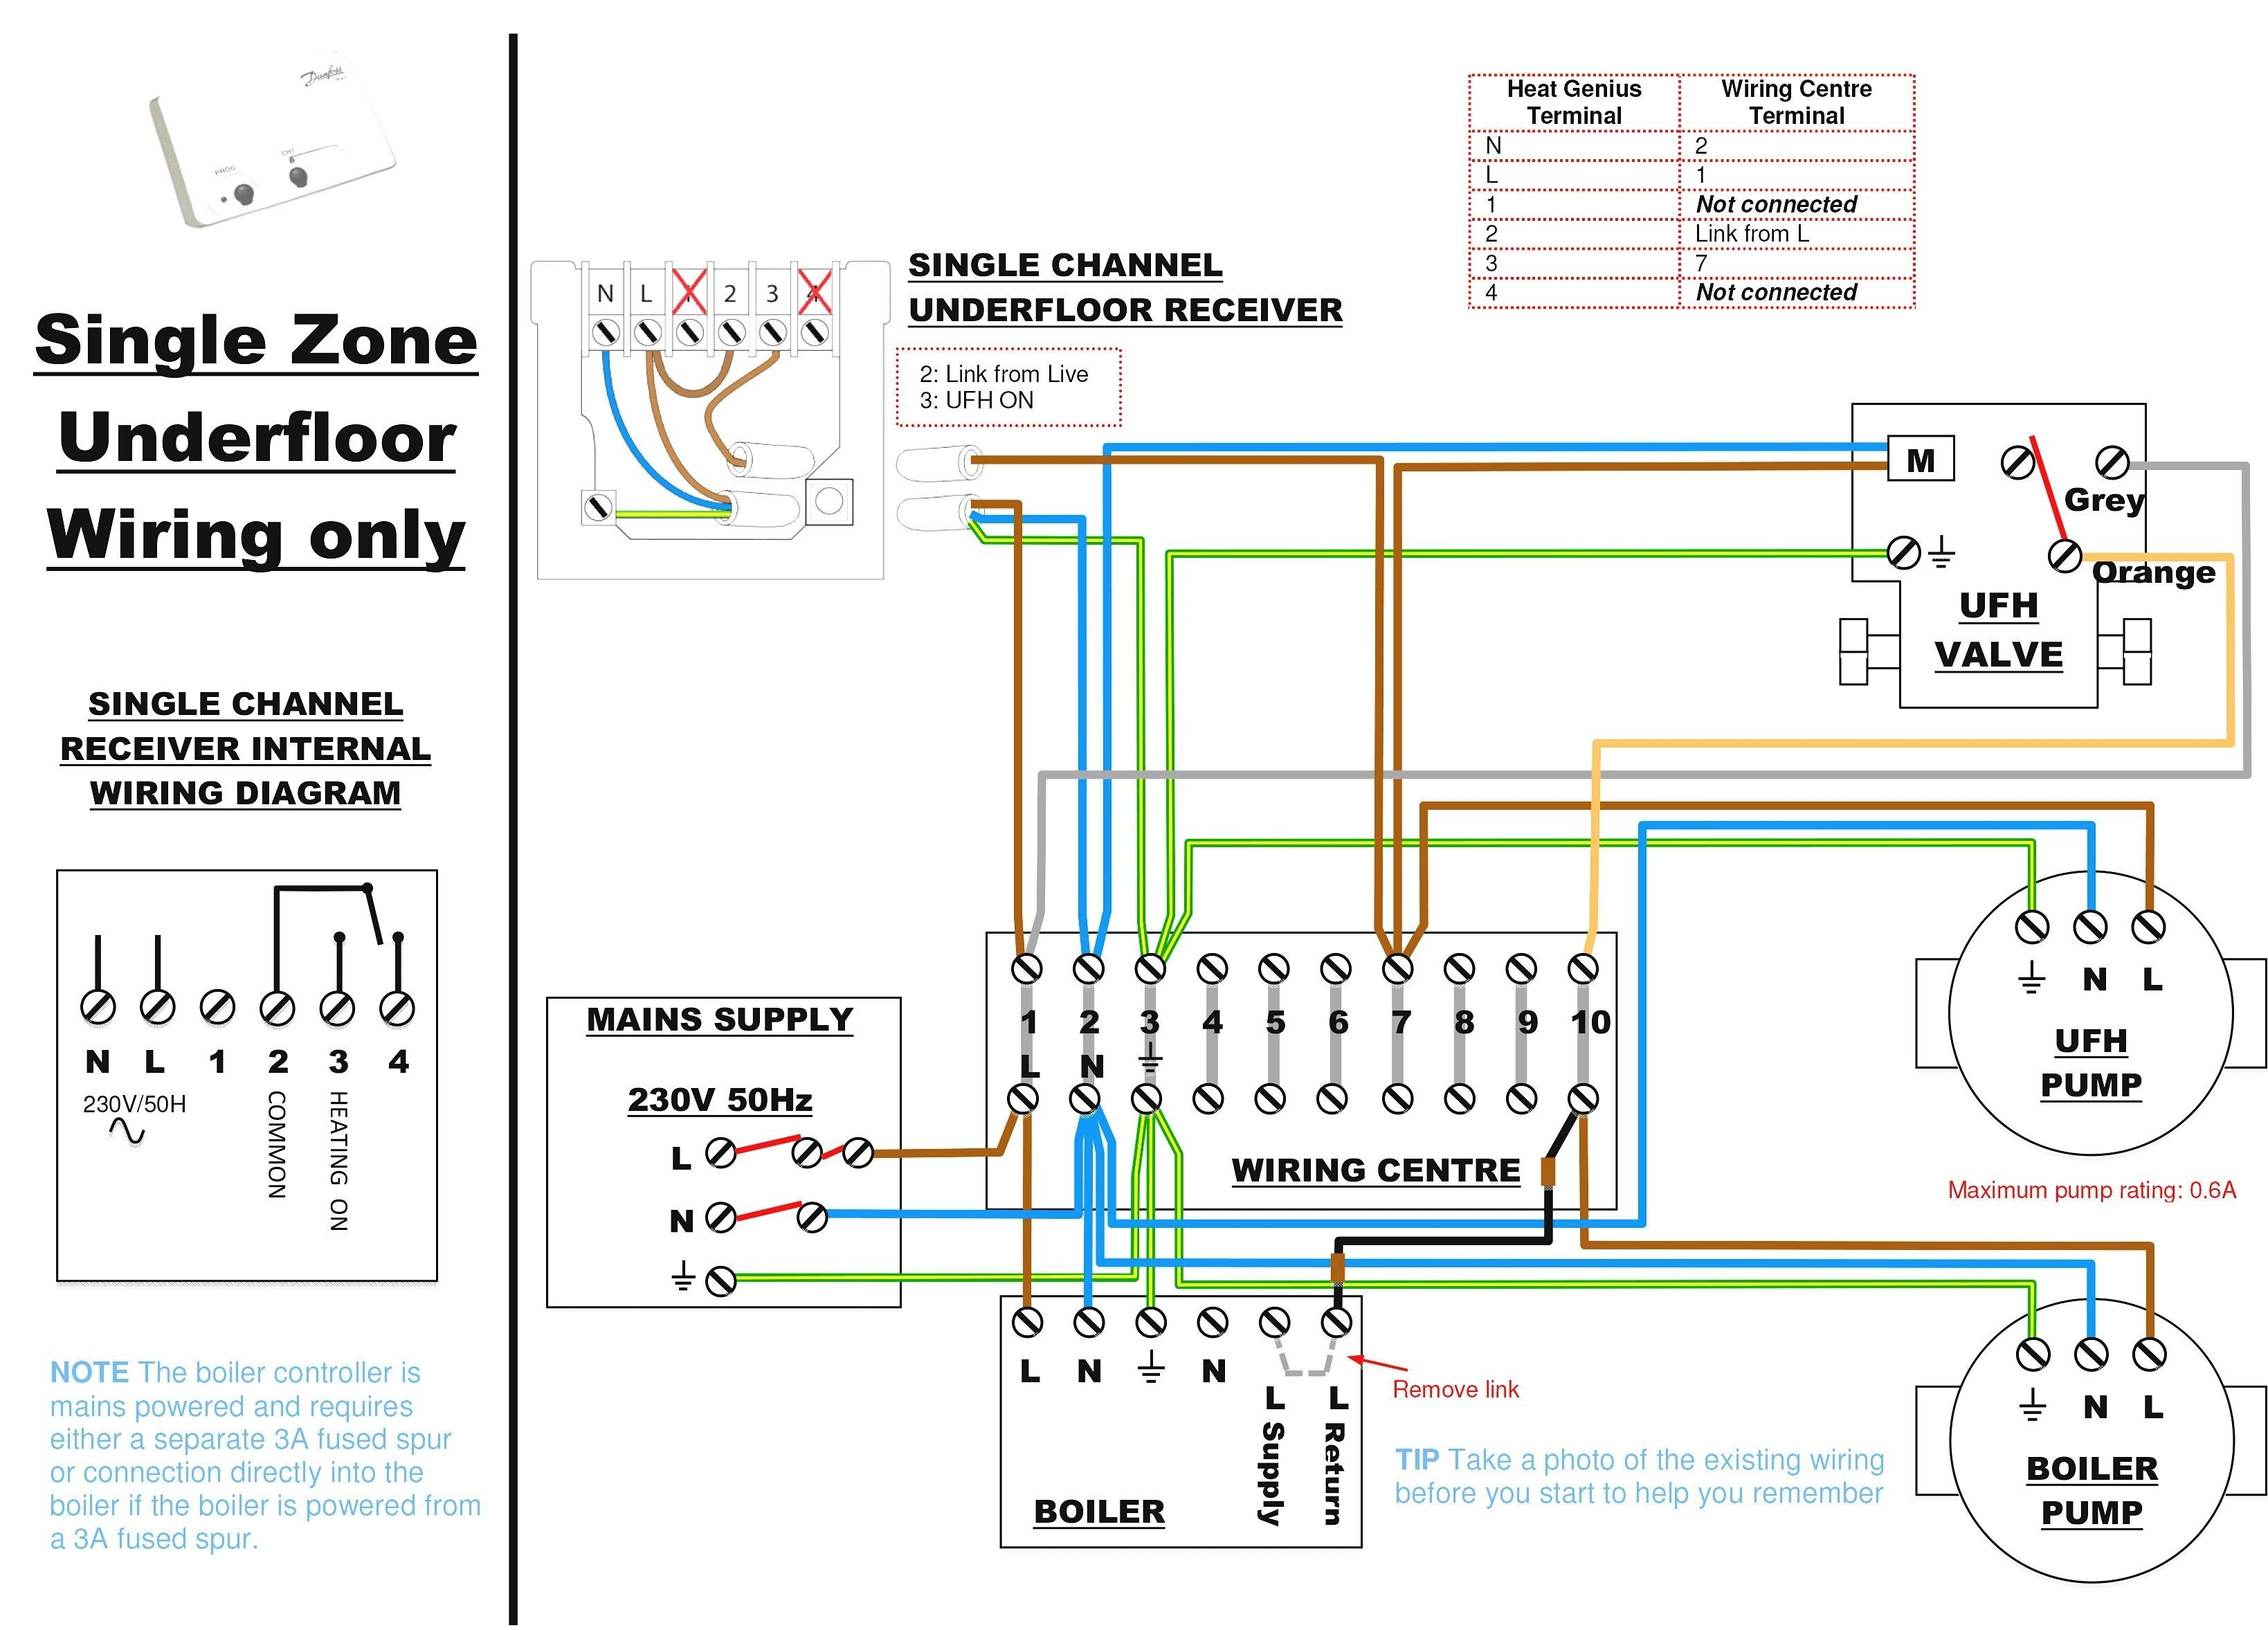 [DIAGRAM_09CH]  Lovely Y Plan Wiring Diagram Combi Boiler #diagrams #digramssample  #diagramimages | Underfloor heating systems, Central heating system,  Thermostat wiring | In Floor Heat Wiring Diagram |  | Pinterest